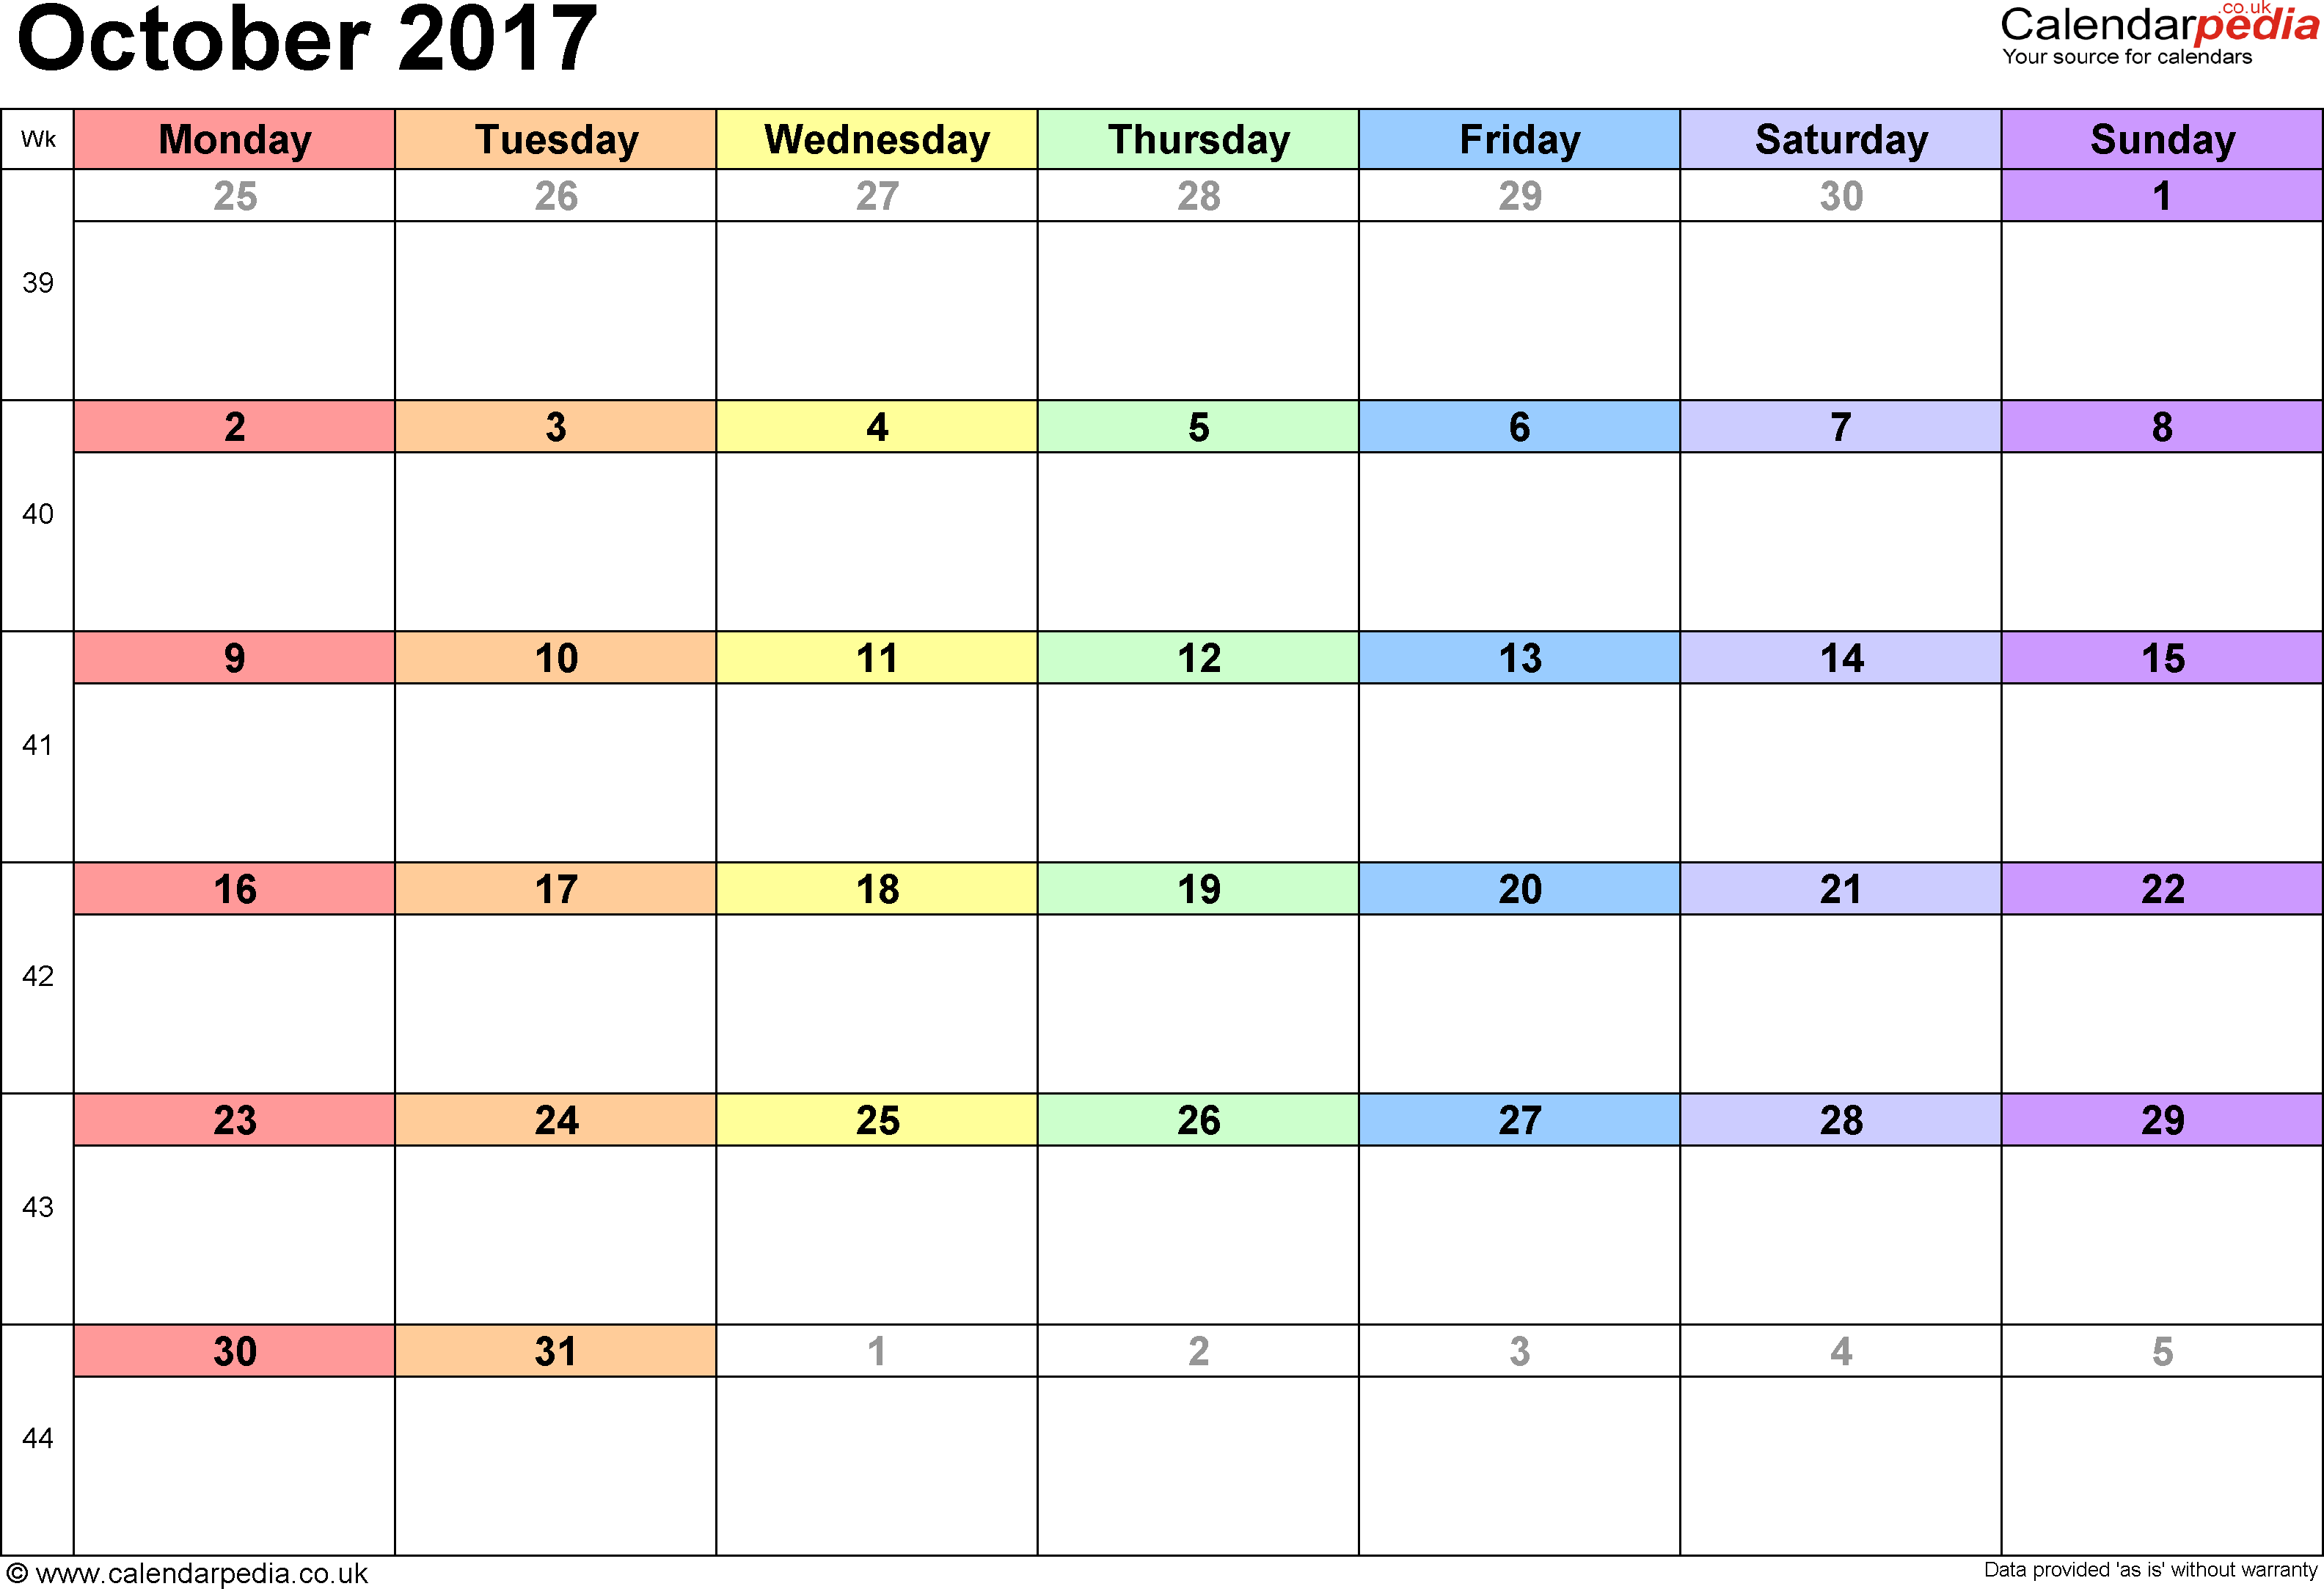 Holidays Calendar for October 16, 2017 - AnydayGuide